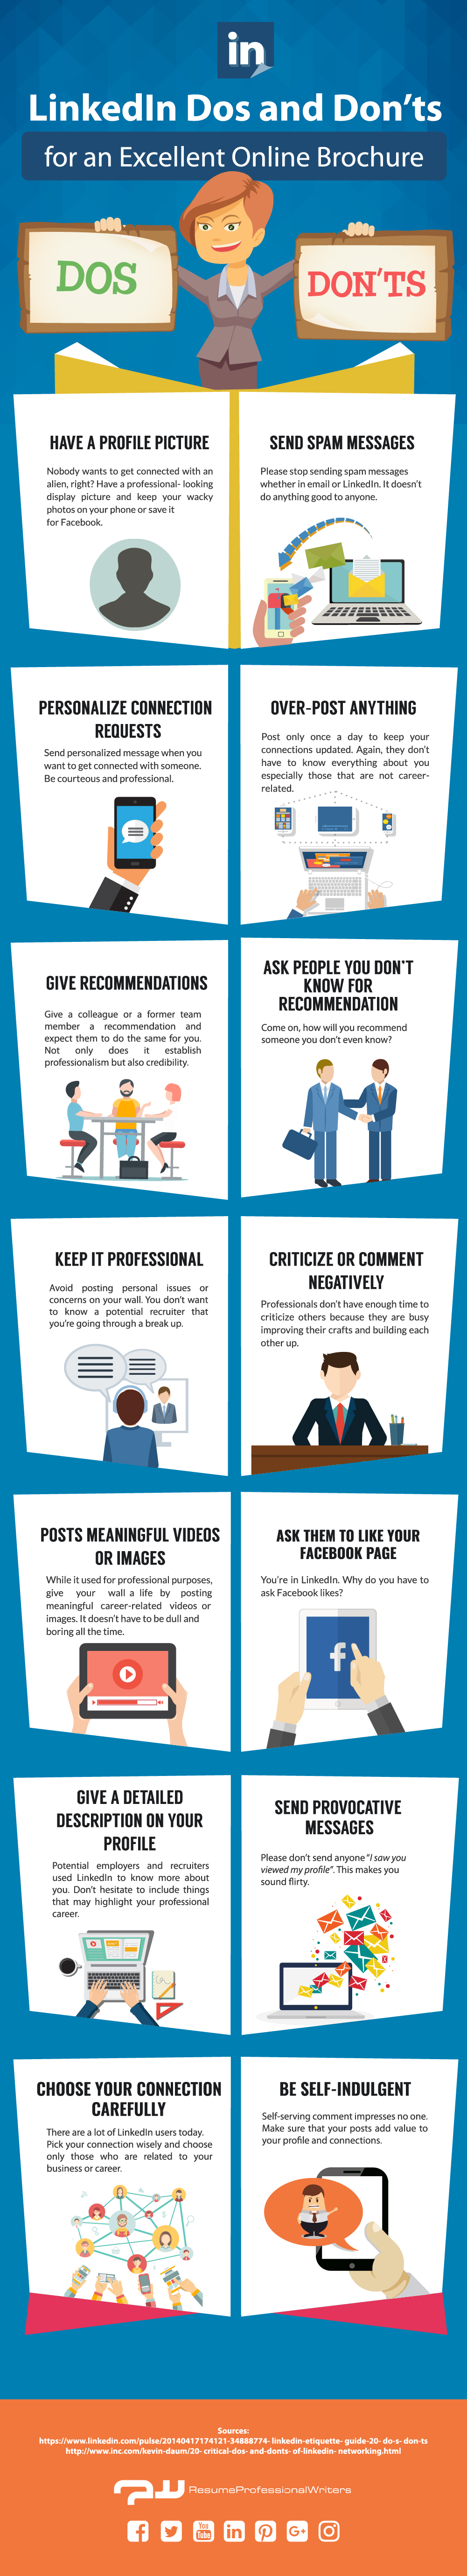 LinkedIn dos and don'ts - infographic